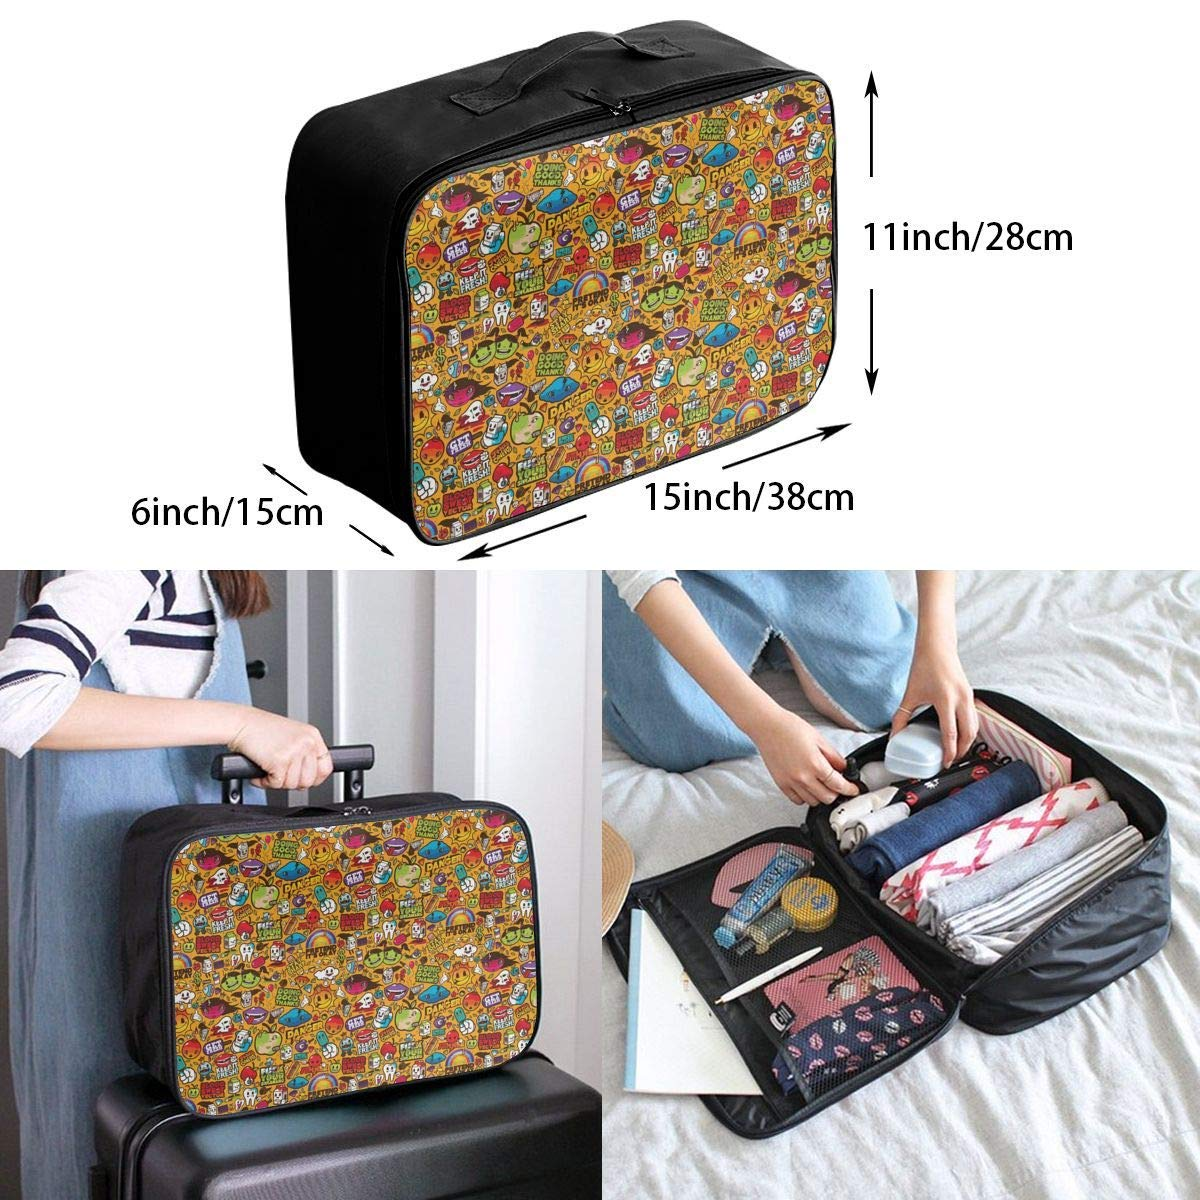 Travel Lightweight Waterproof Foldable Storage Carry Luggage Duffle Tote Bag Trippy Cartoon Design JTRVW Luggage Bags for Travel